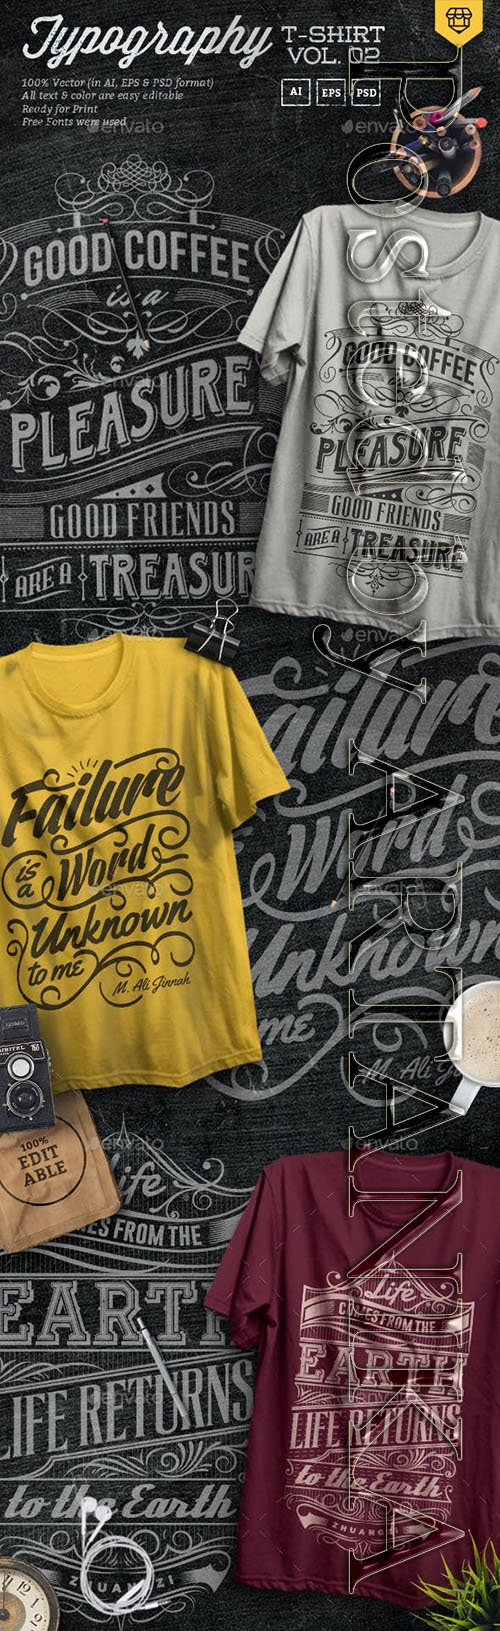 3 Quote Typography T-Shirts Vol.02 19295960